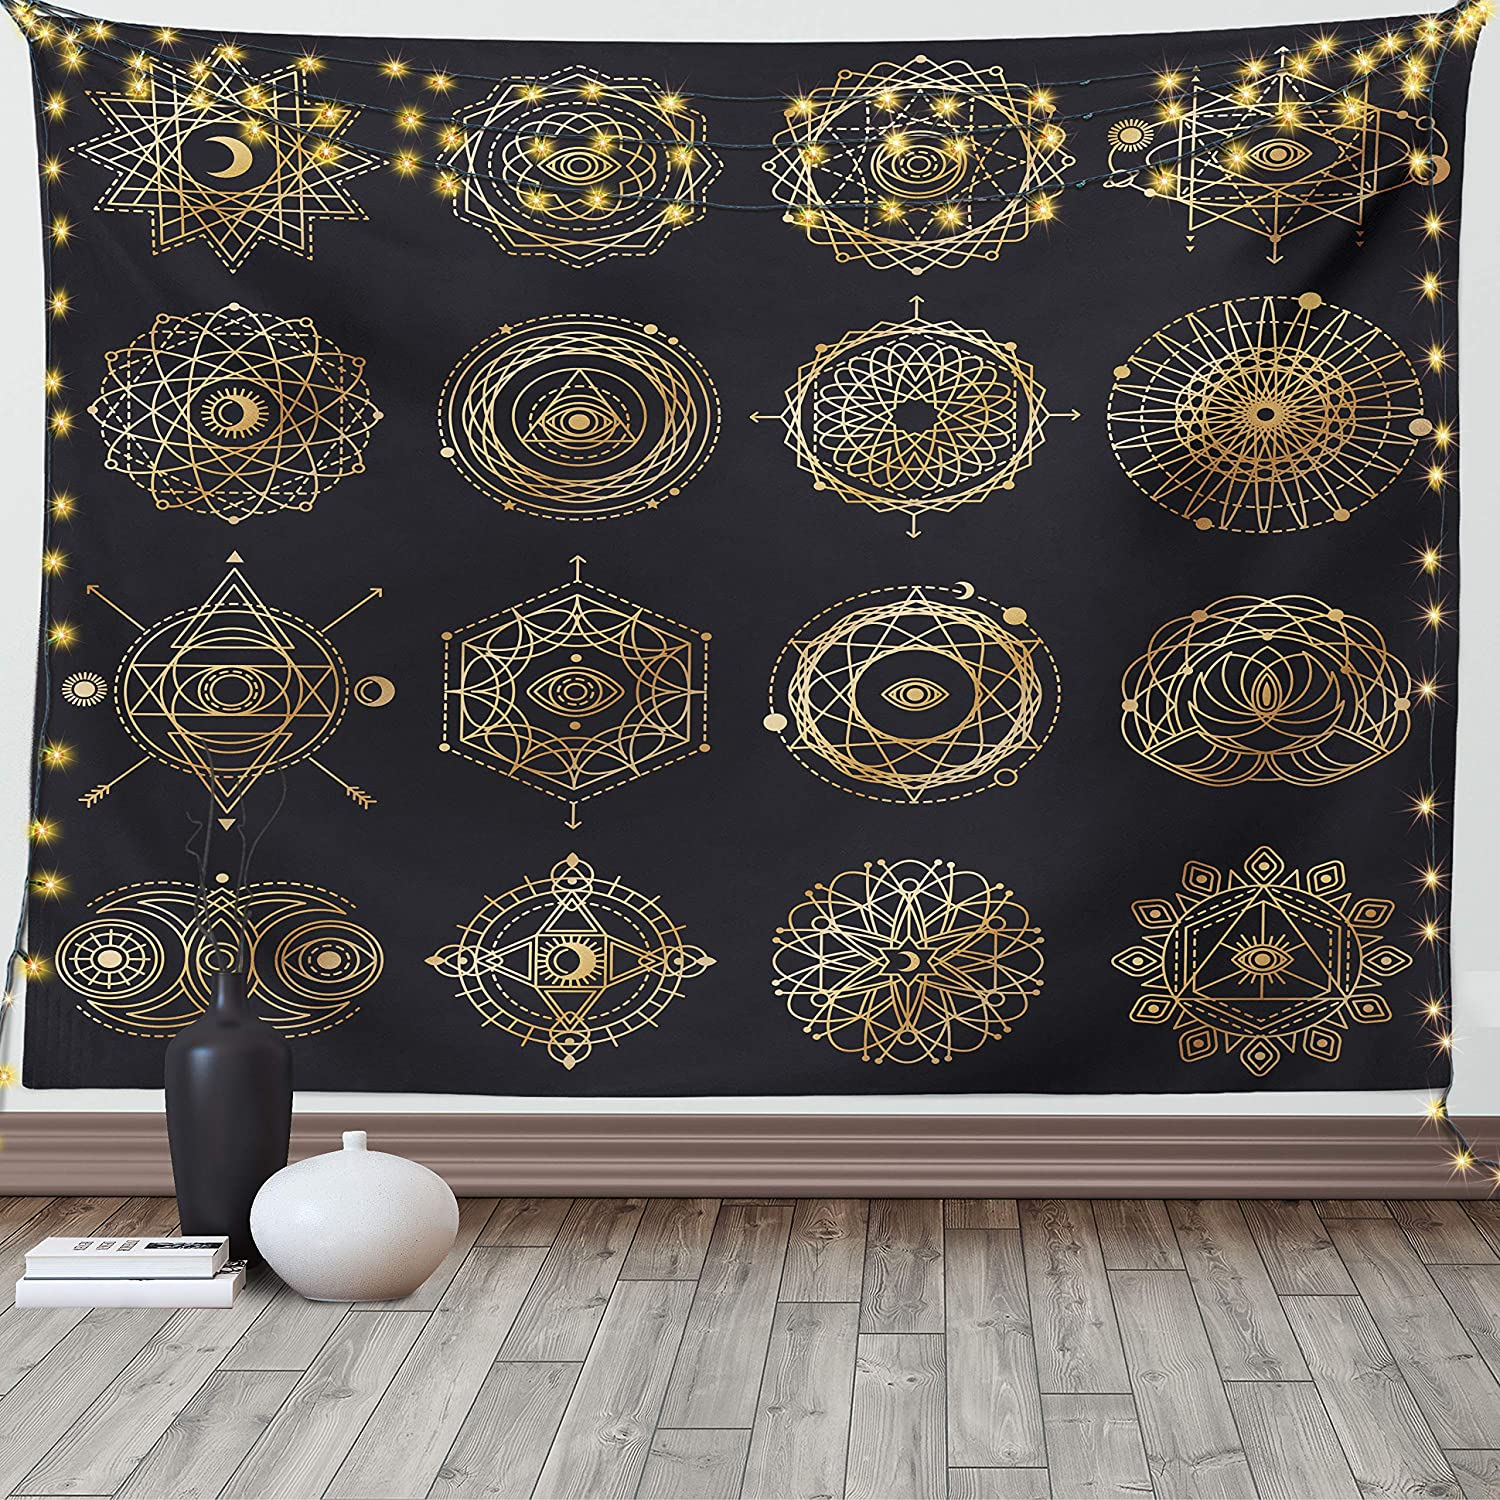 Lunarable Sun and Moon Tapestry Queen Size, Geometry Forms Boho Round Mandala Motifs Occult Alchemy, Wall Hanging Bedspread Bed Cover Wall Decor, 88